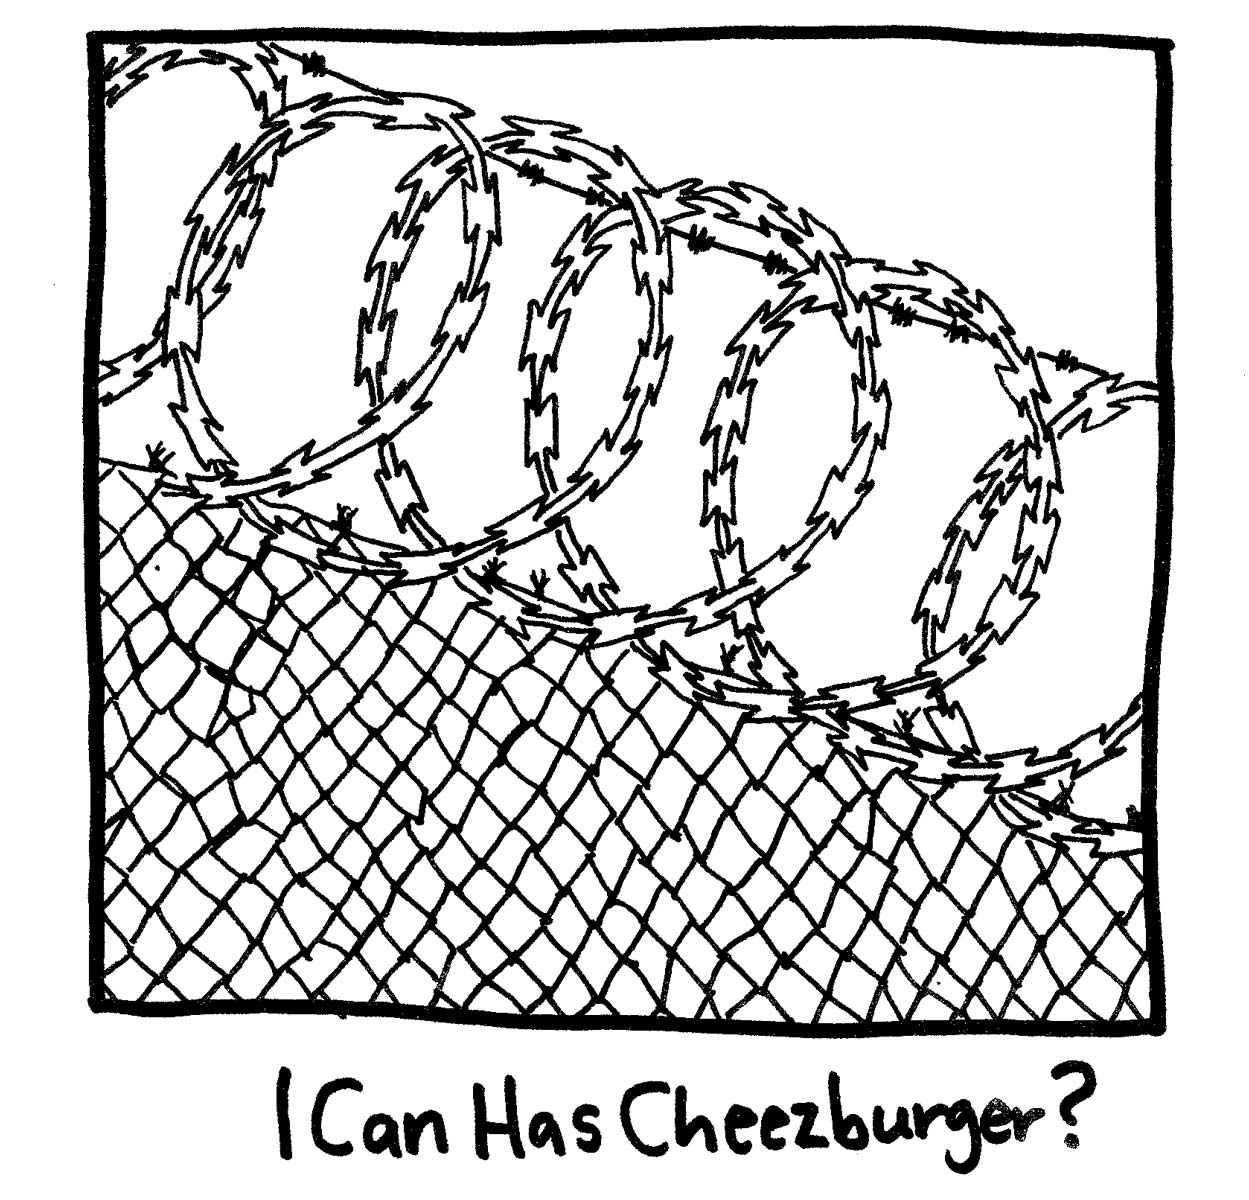 image of barbed wire fence. Below it reads the question: I can has Cheesburger?